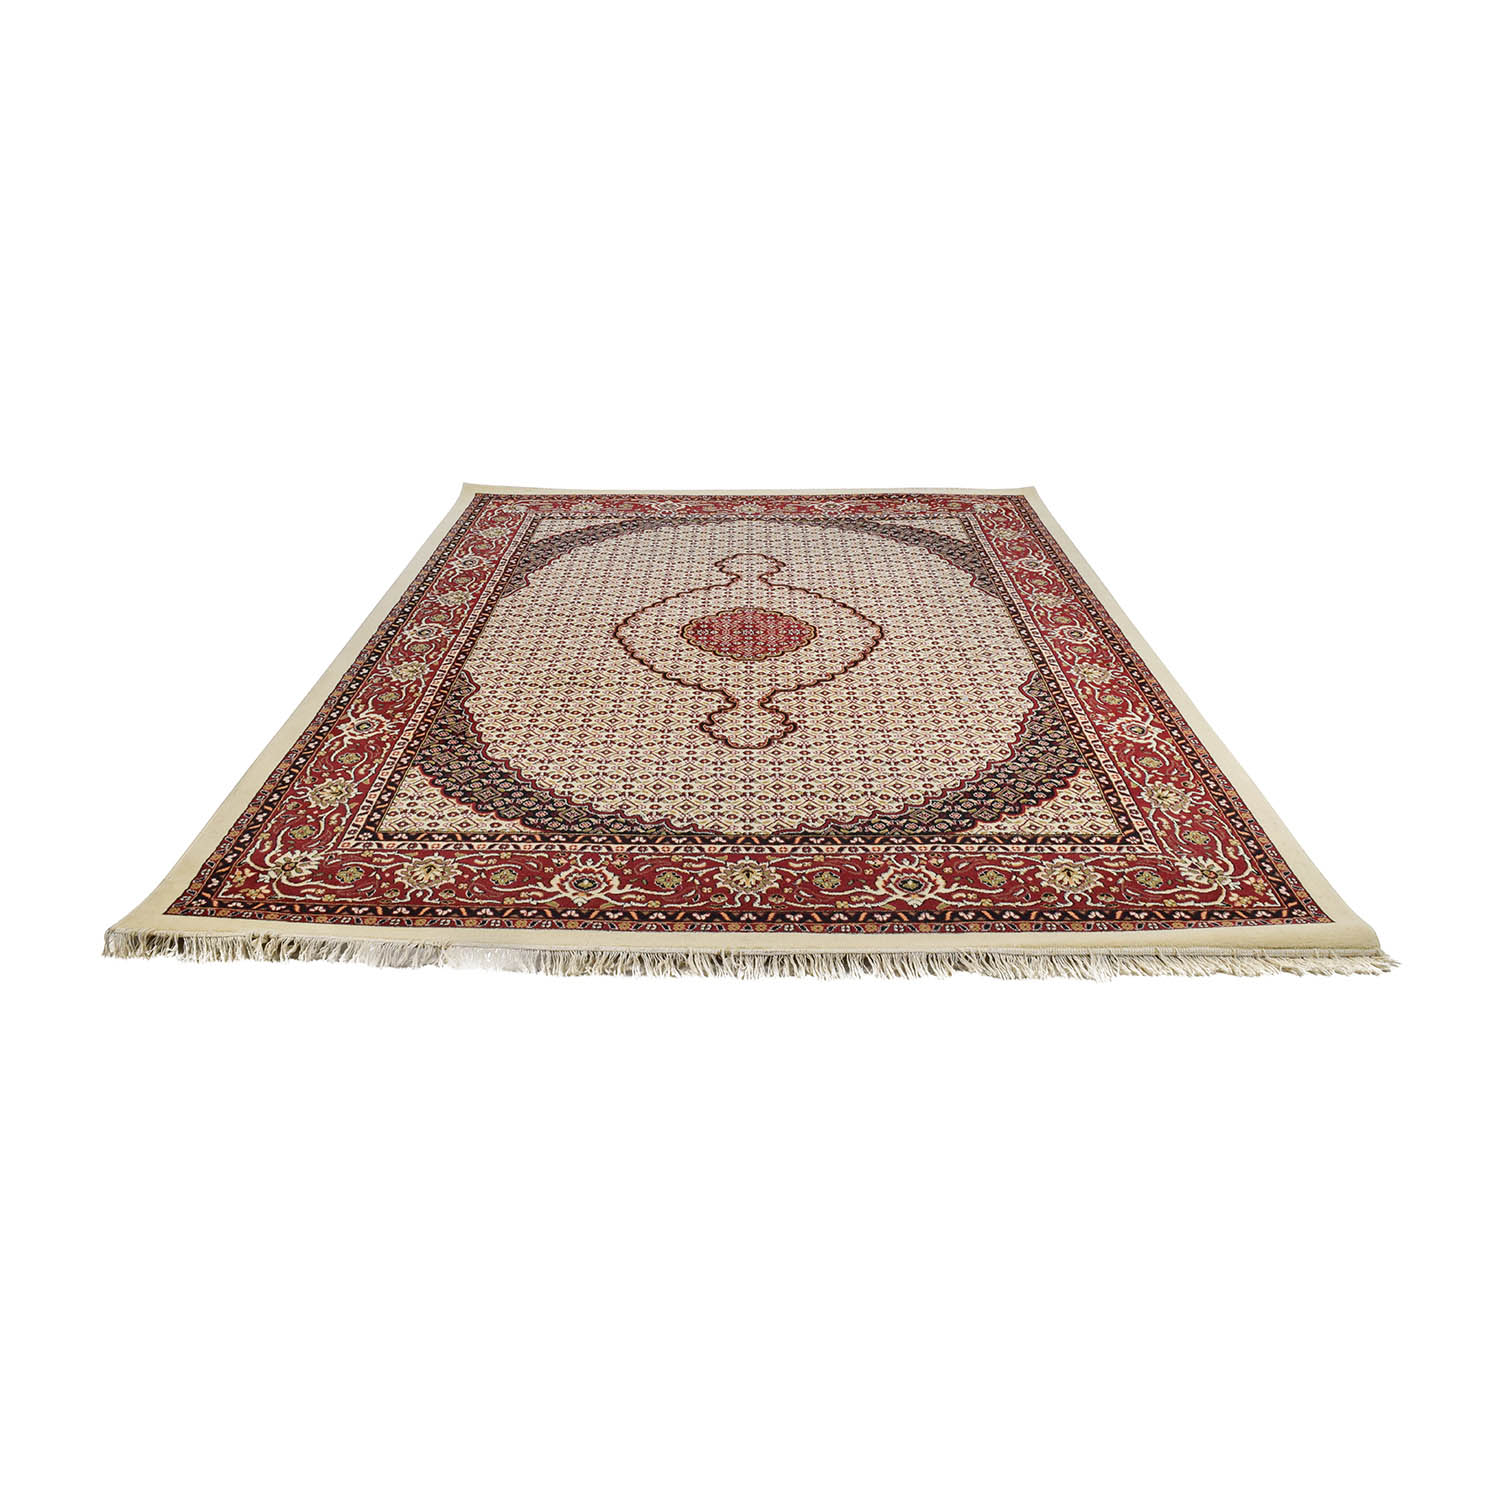 Tabriz Ivory, Burgundy and Navy Turkish Rug price